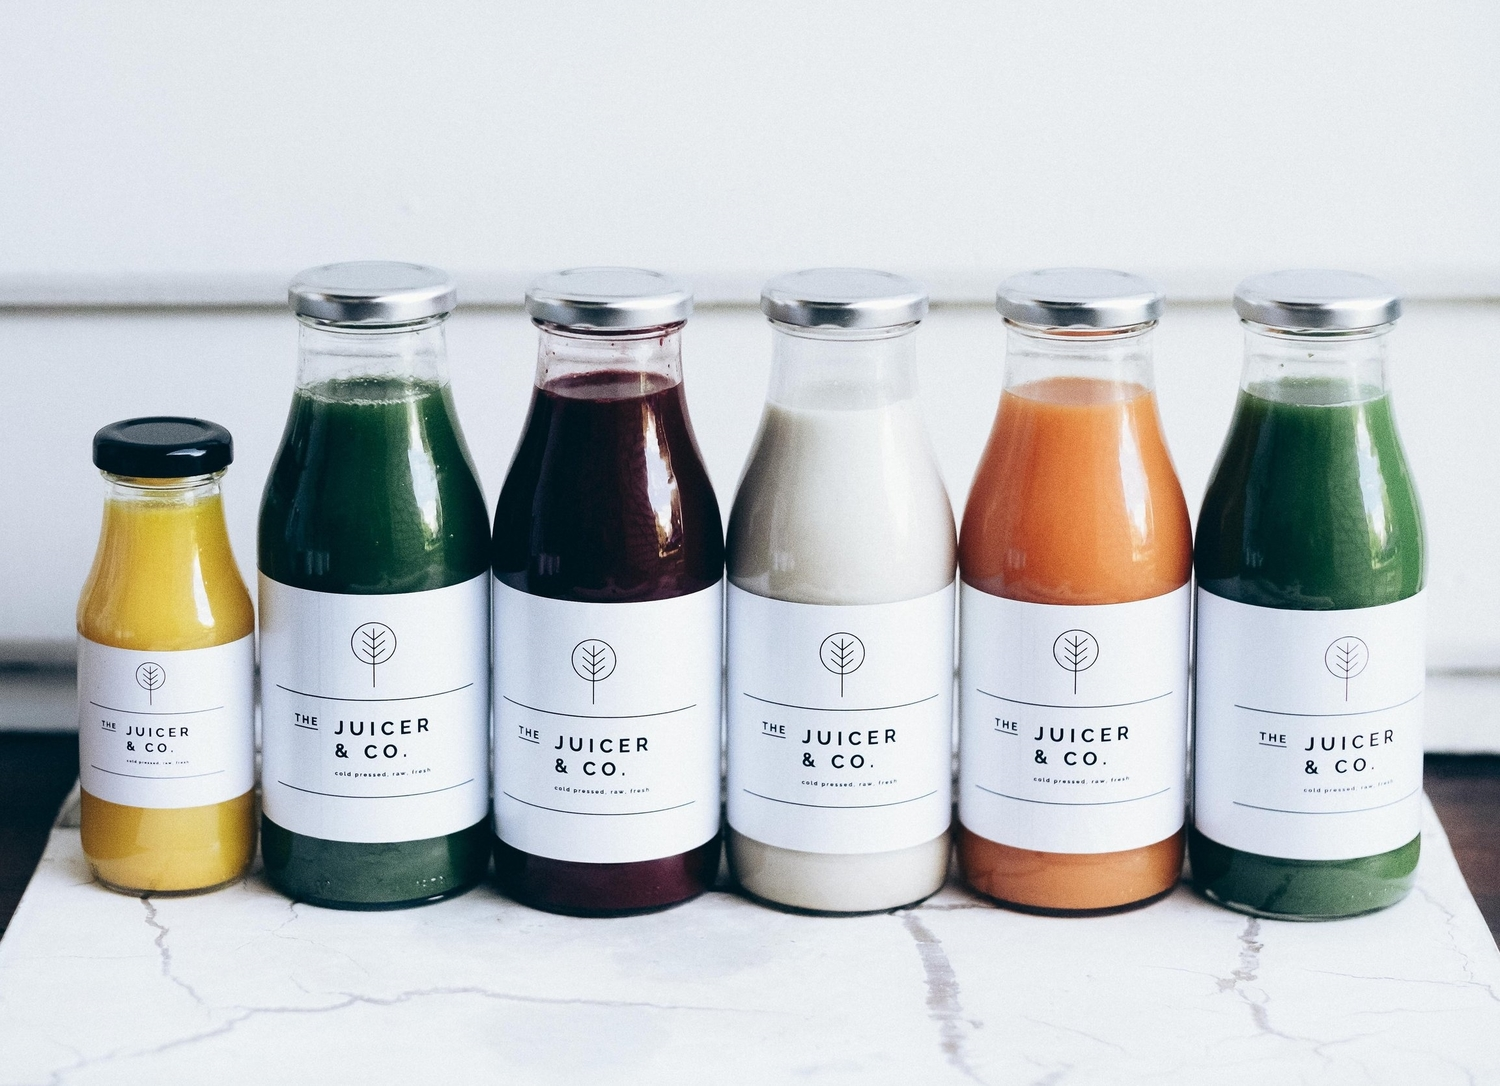 Stockists — The Juicer & Co